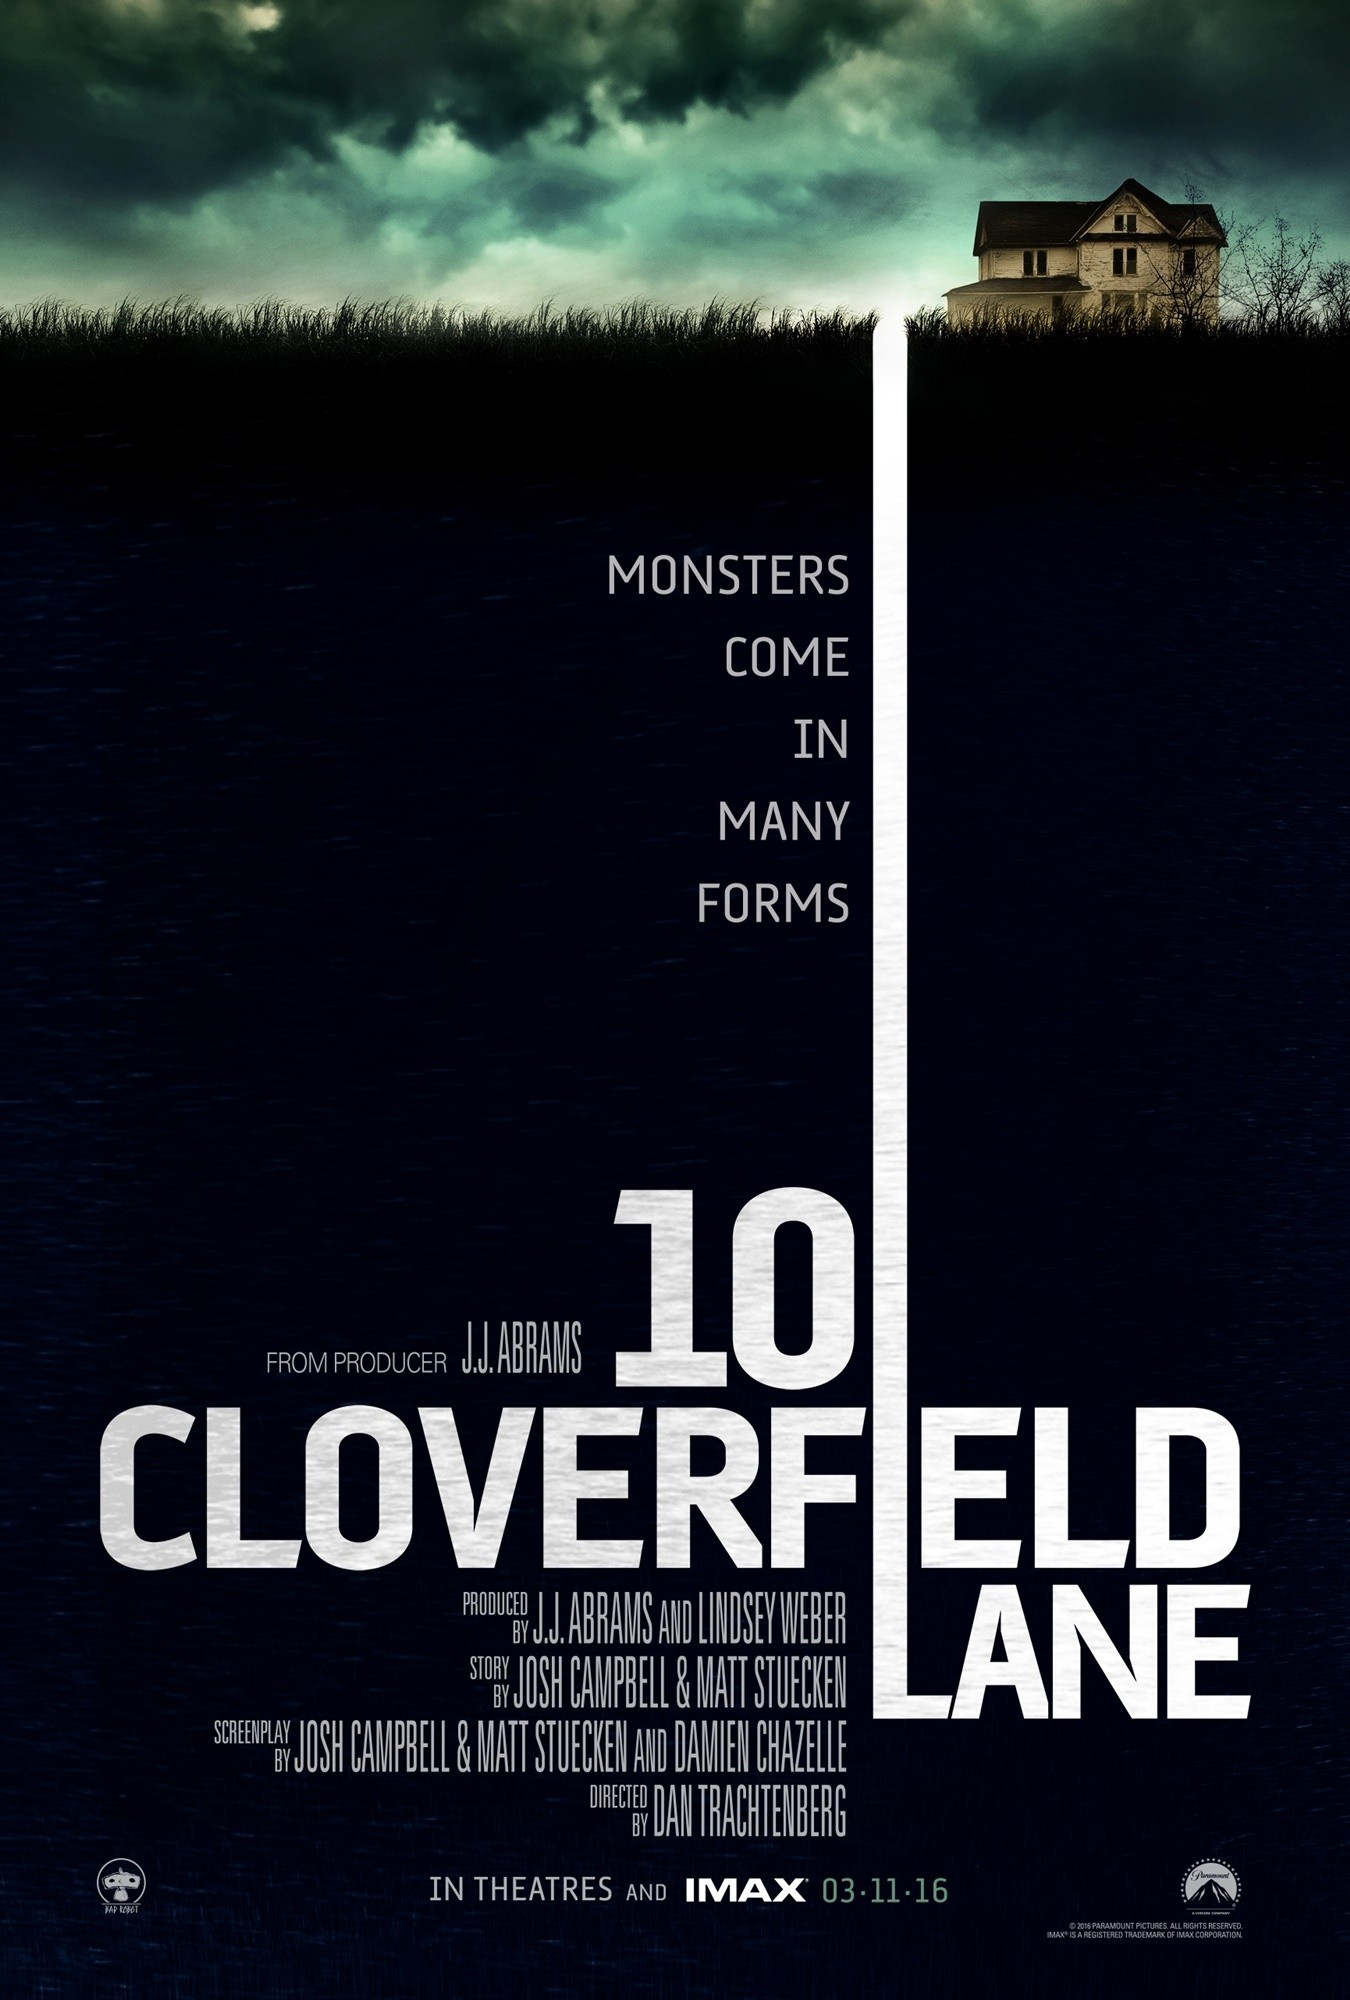 ten-cloverfield-lane-poster01.jpg